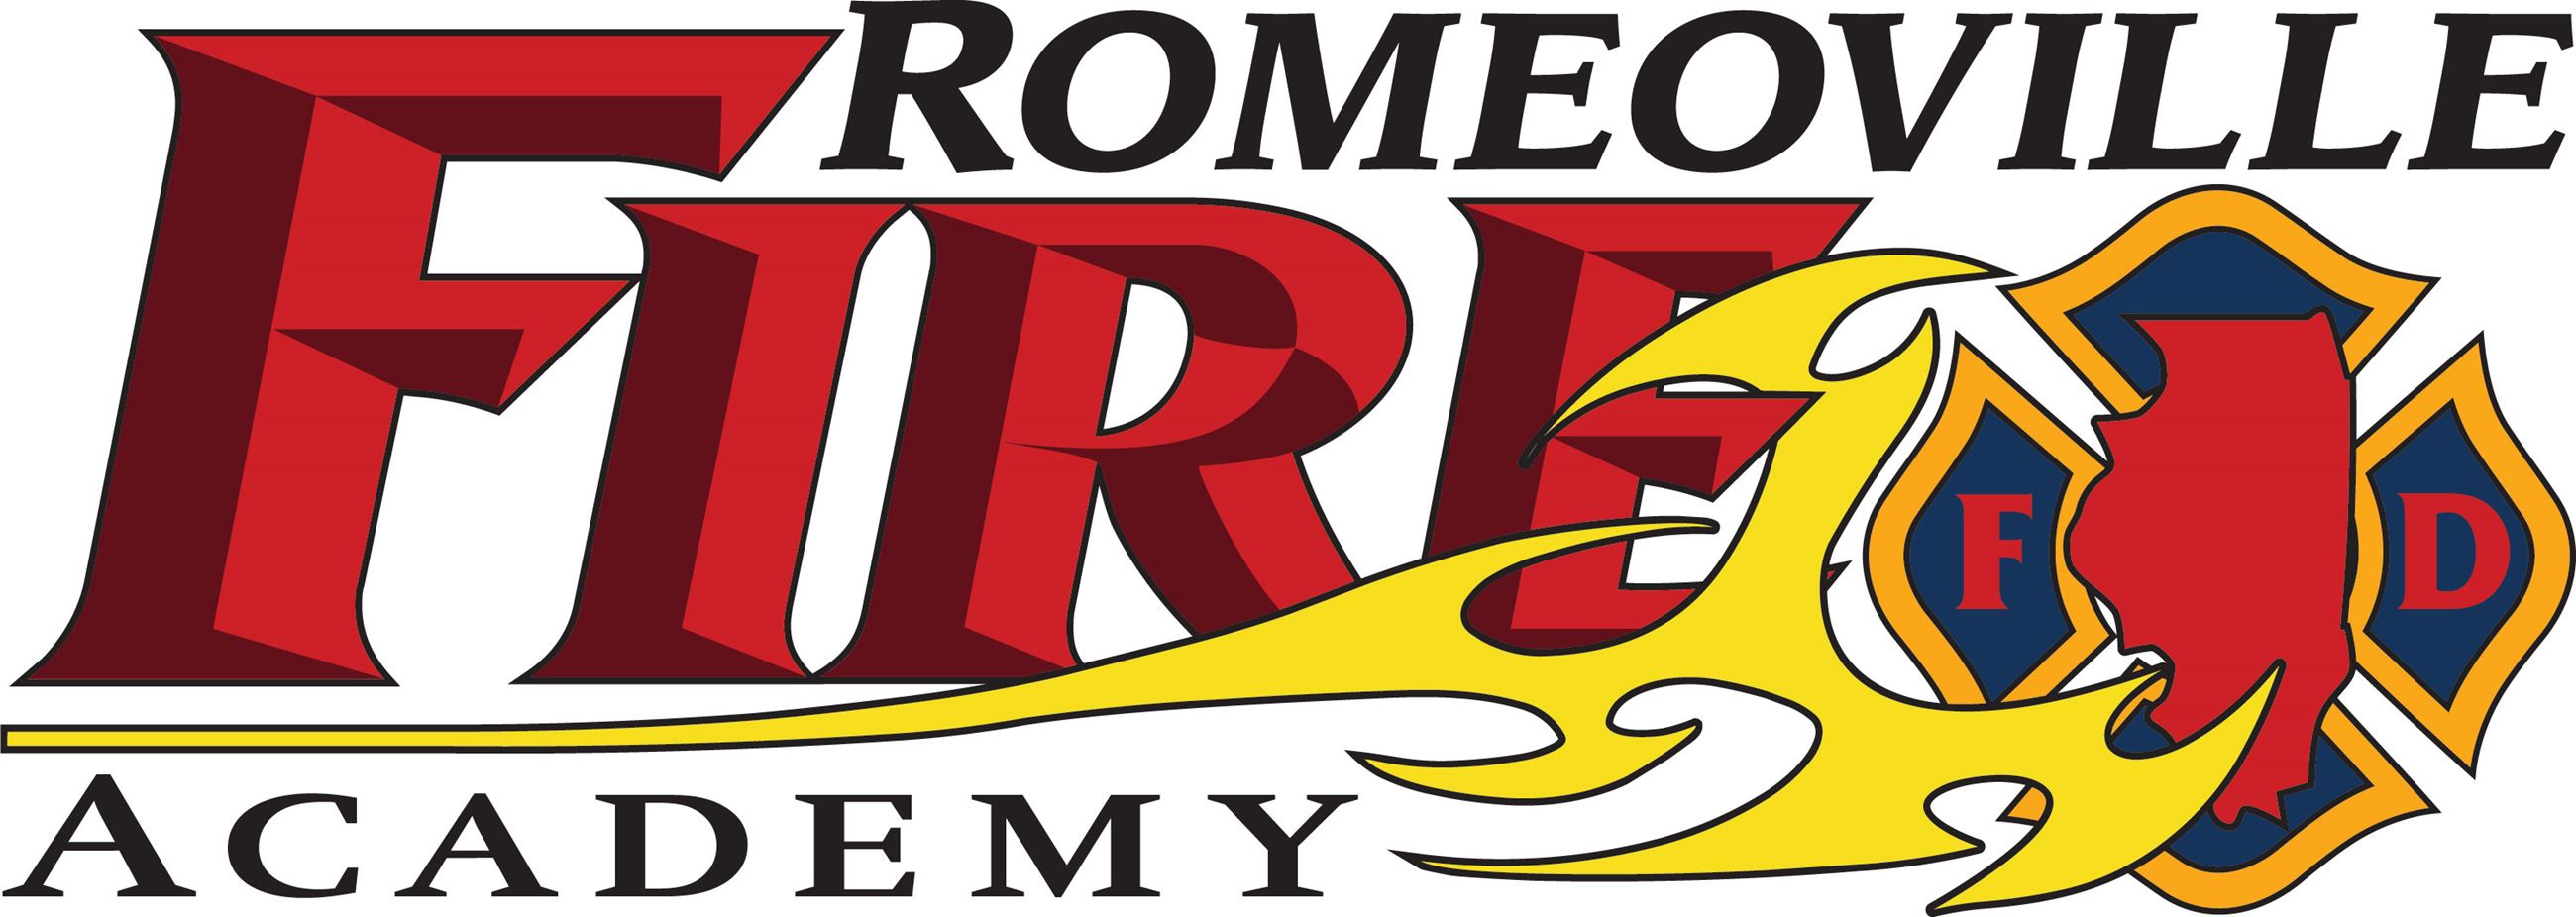 Removal Fire Academy logo